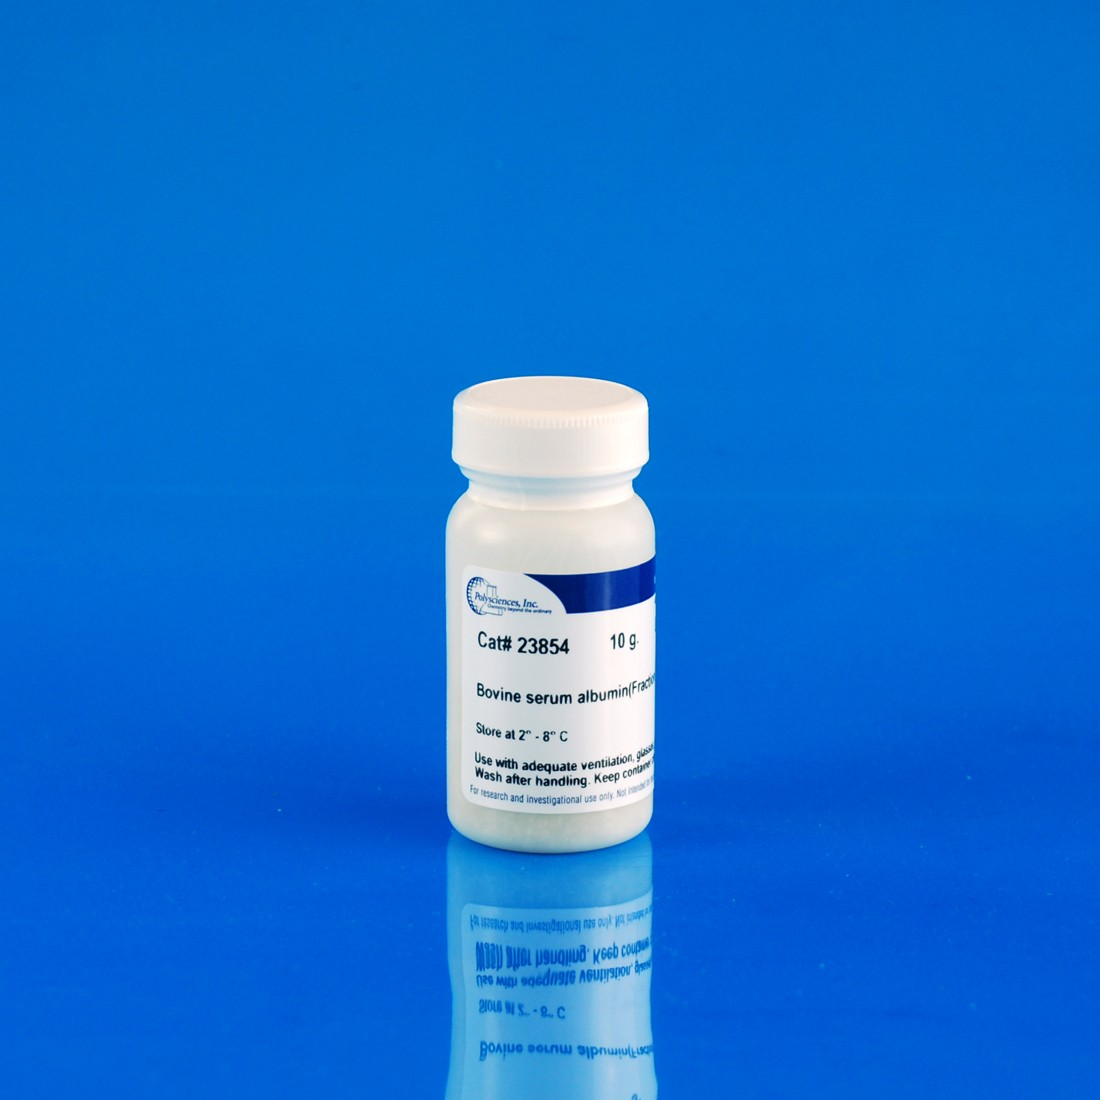 Bovine serum albumin (fraction V, protease-free), lyophilized